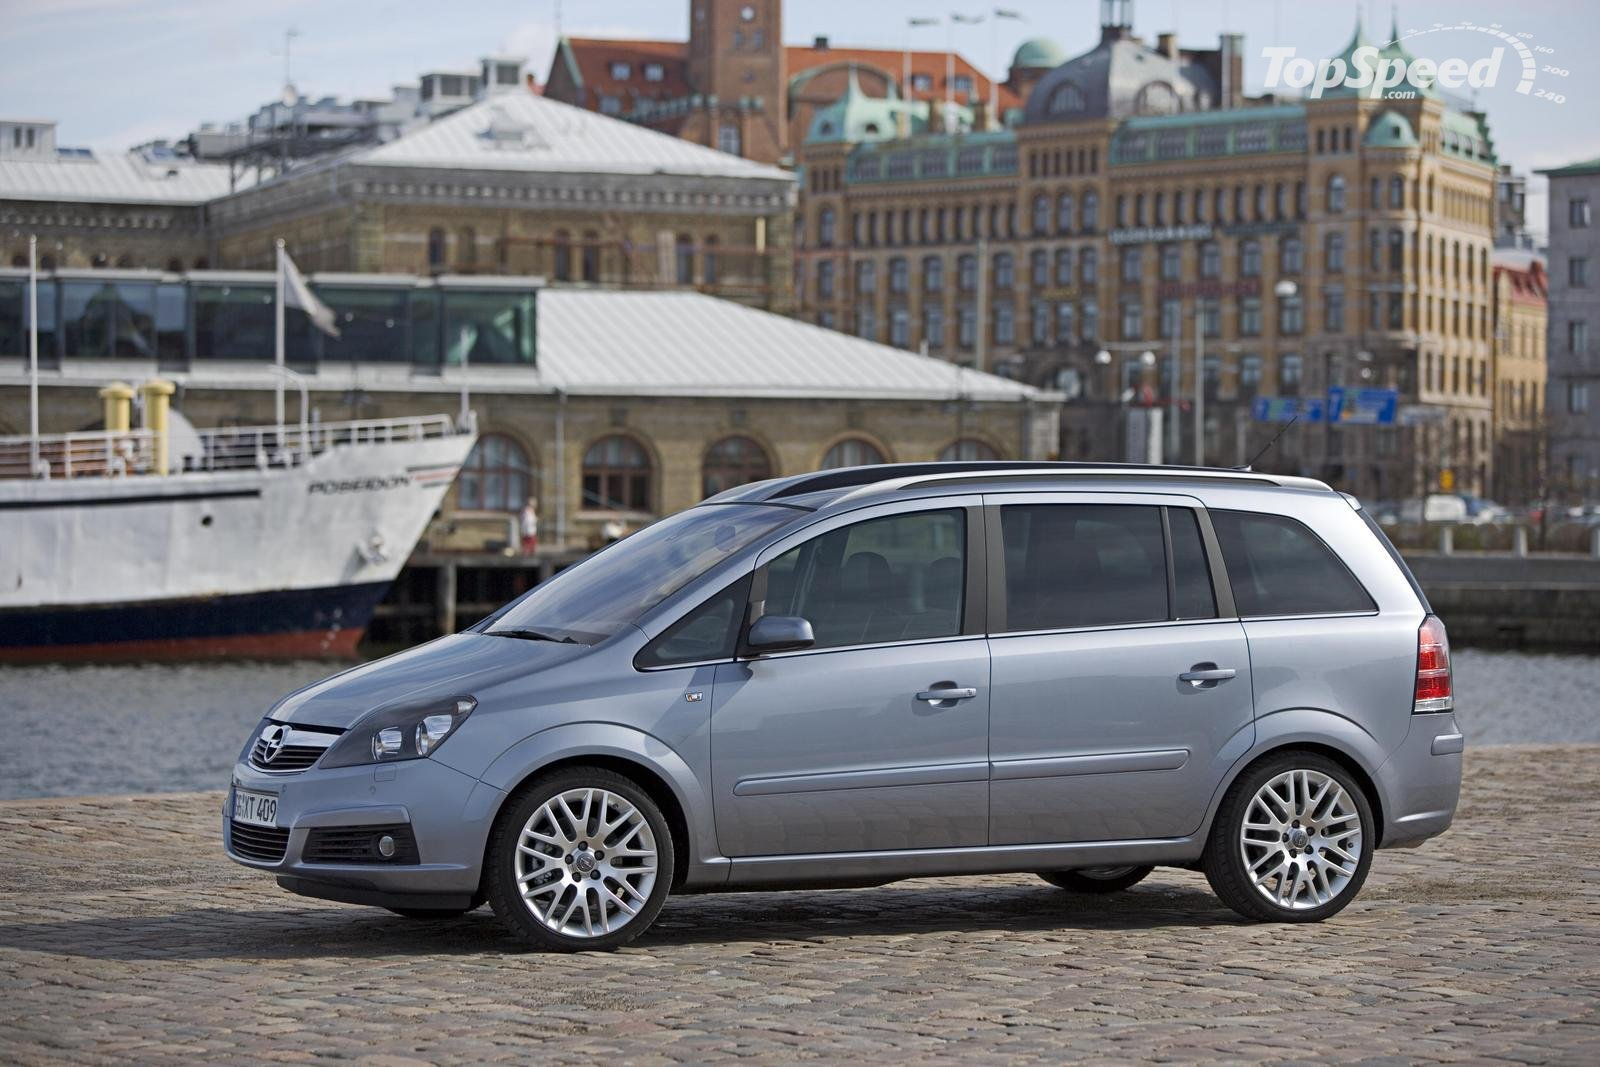 opel zafira 16 photos news reviews specs car listings. Black Bedroom Furniture Sets. Home Design Ideas